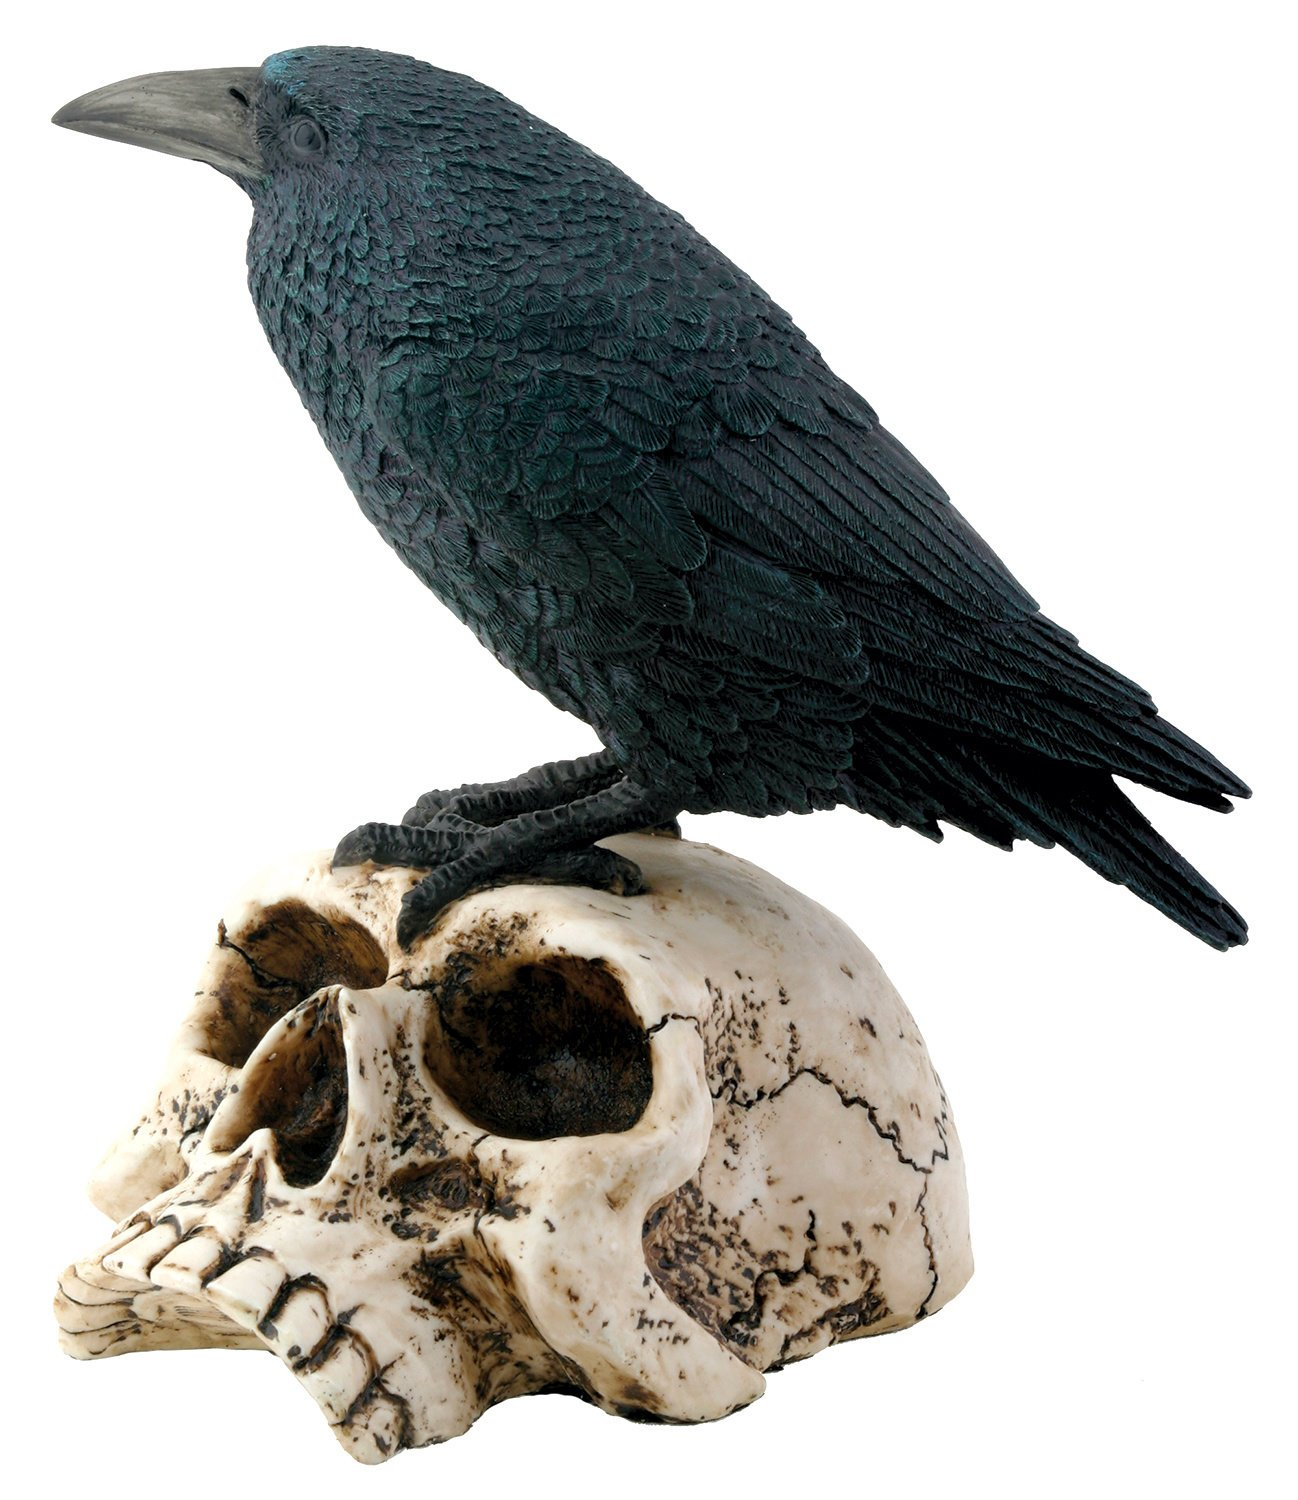 Raven on Skull Collectible Bird Crow Skeleton Figurine Statue Model